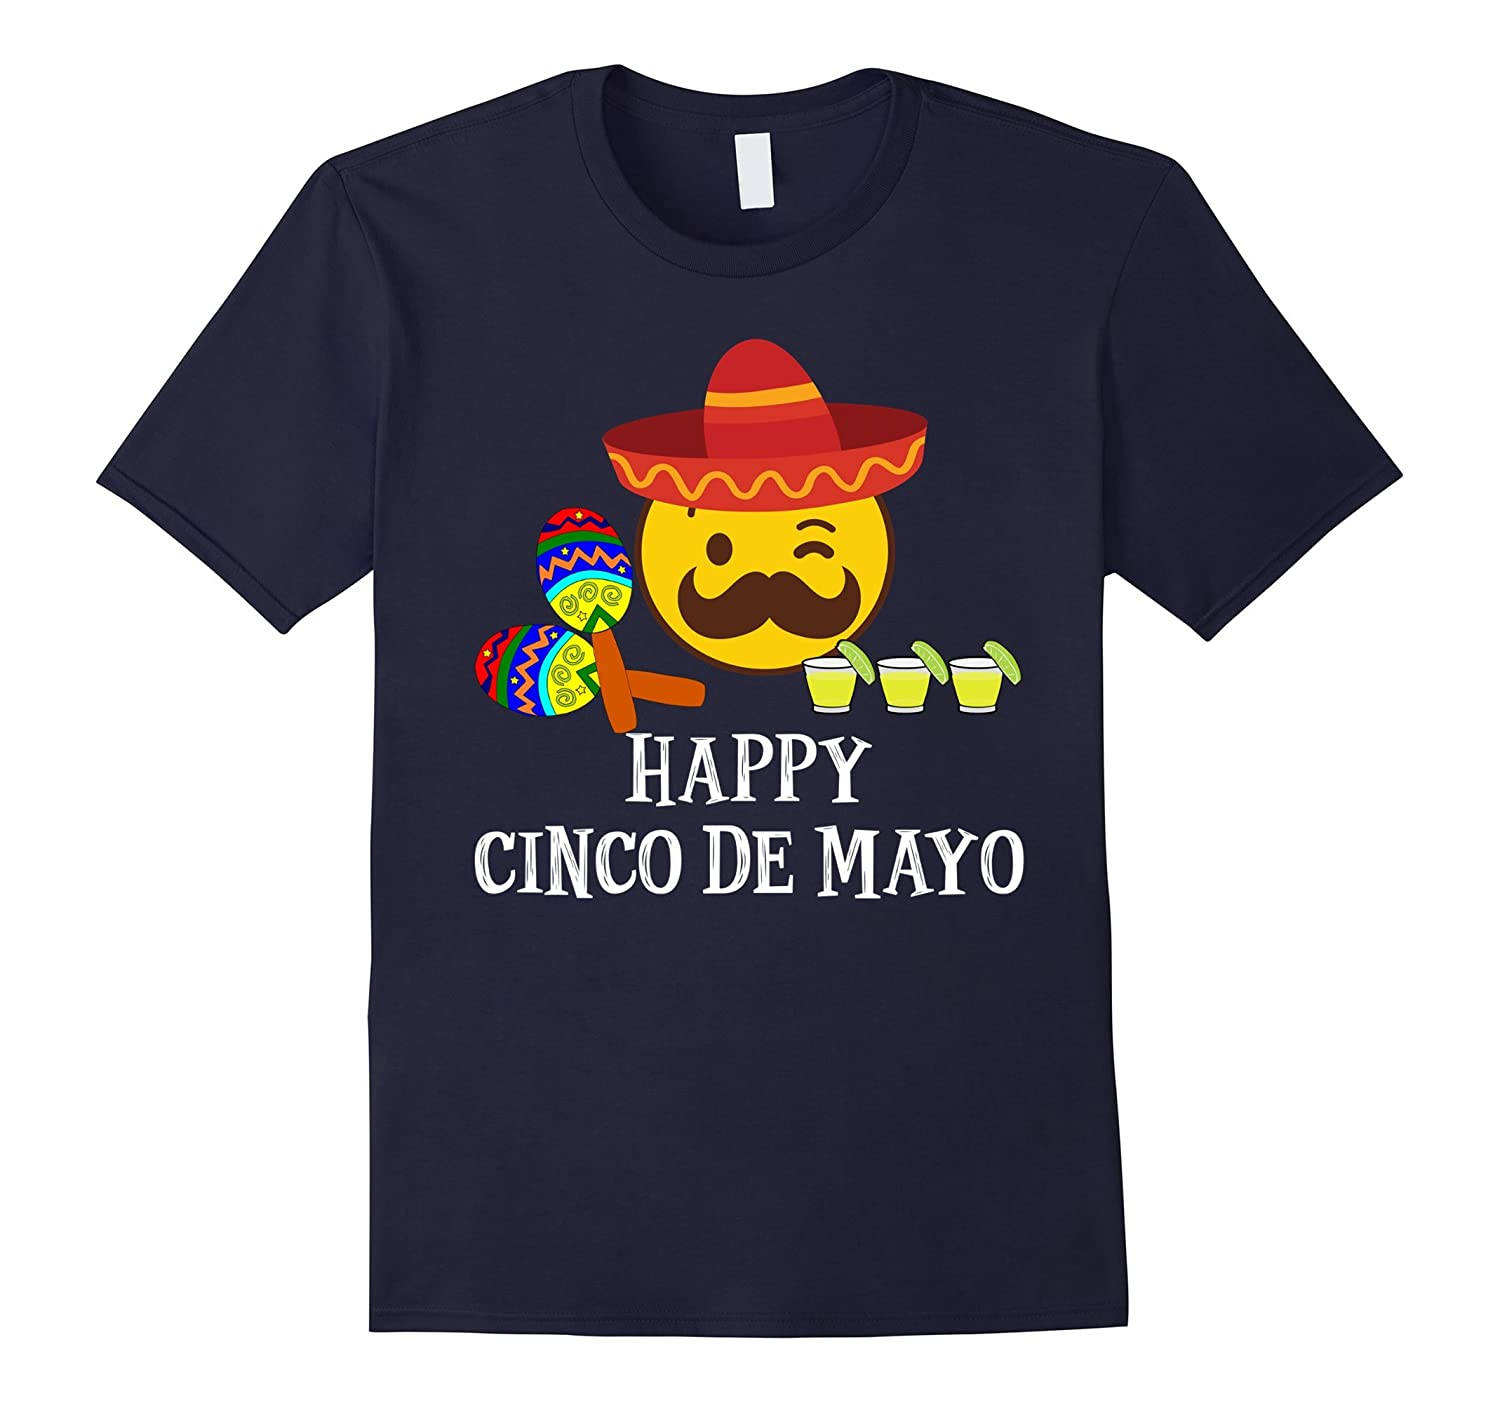 Amazon.com: Happy Cinco De Mayo T-Shirts -Fiesta Emoji Tequila Shots Tee: Clothing